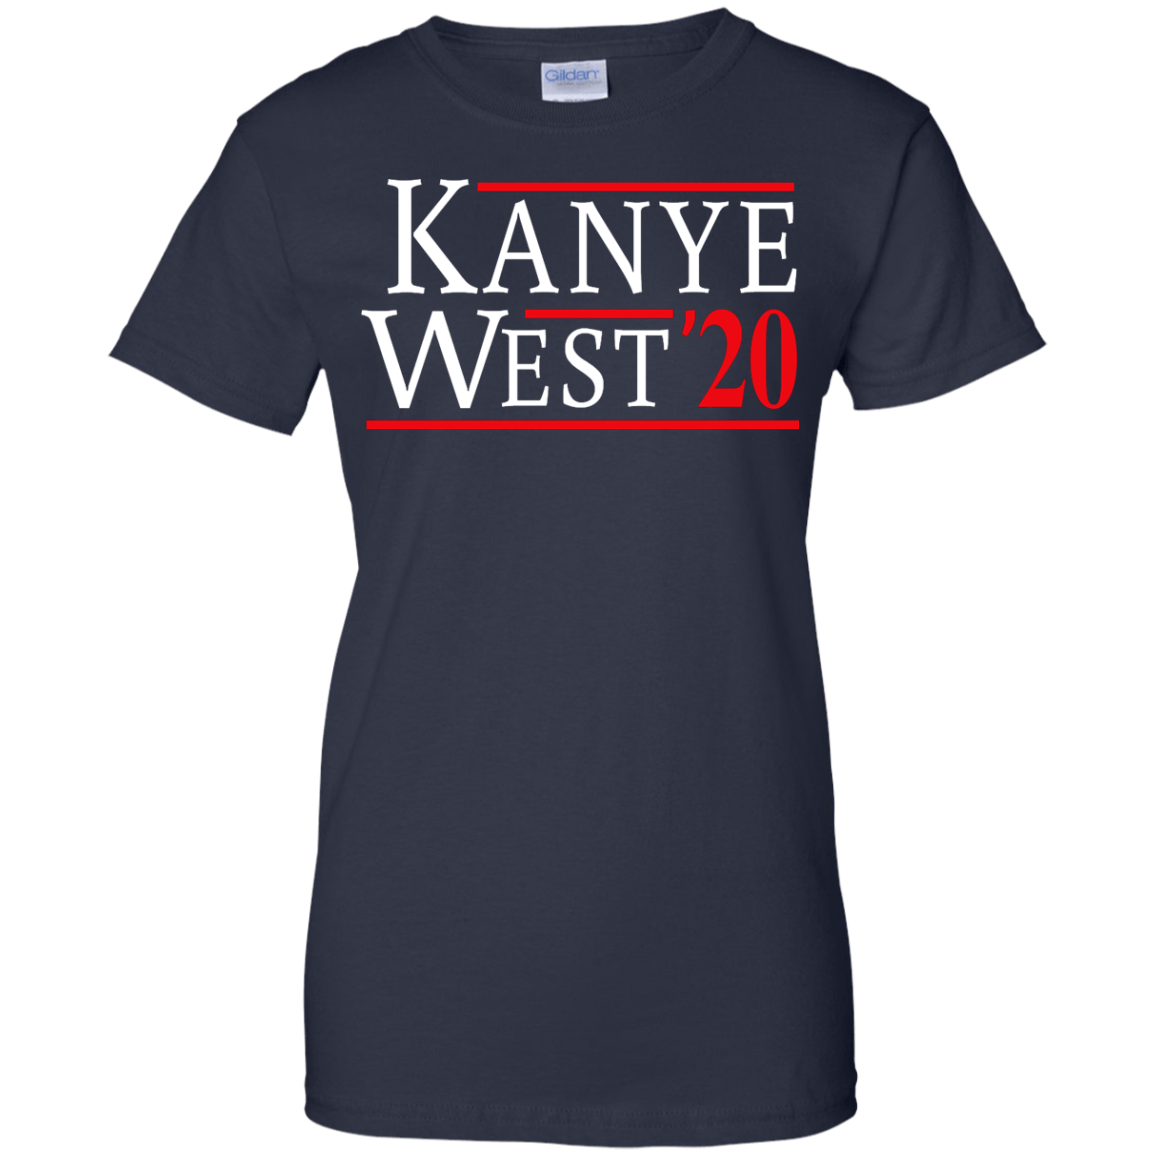 Kanye West For President 2016 T Shirt Hoodies Tank Top